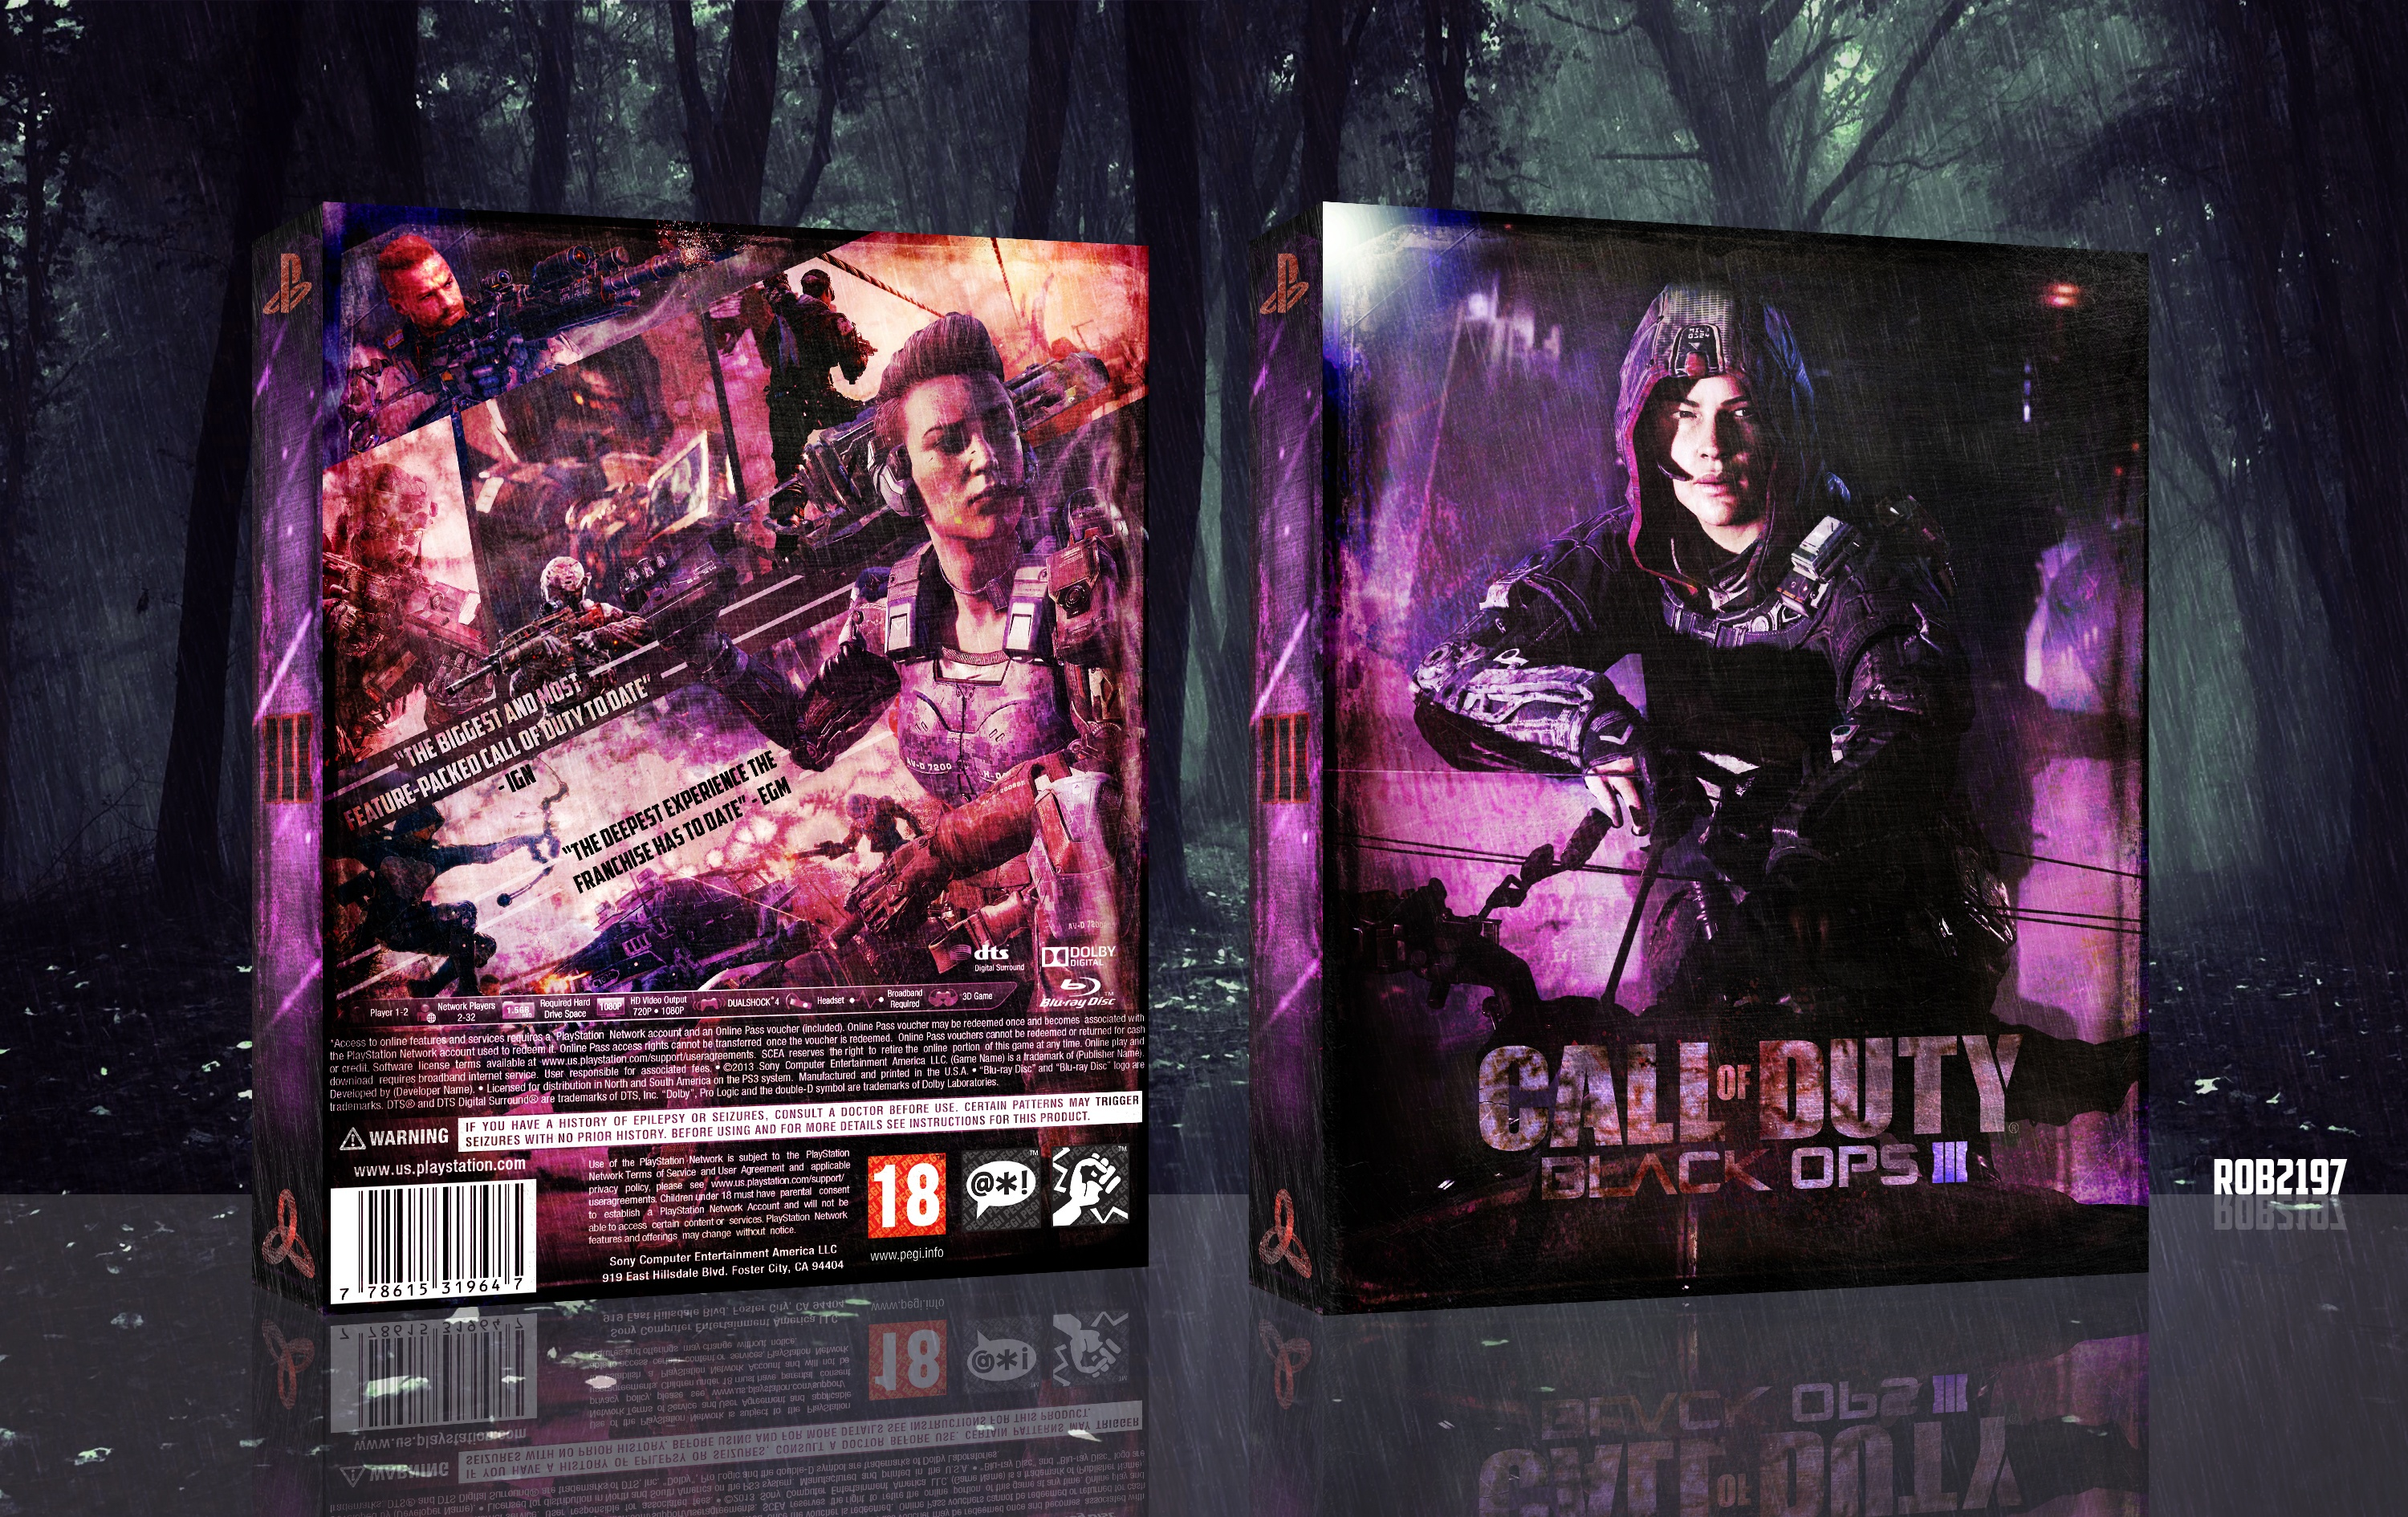 Call Of Duty - Black Ops 3 box cover